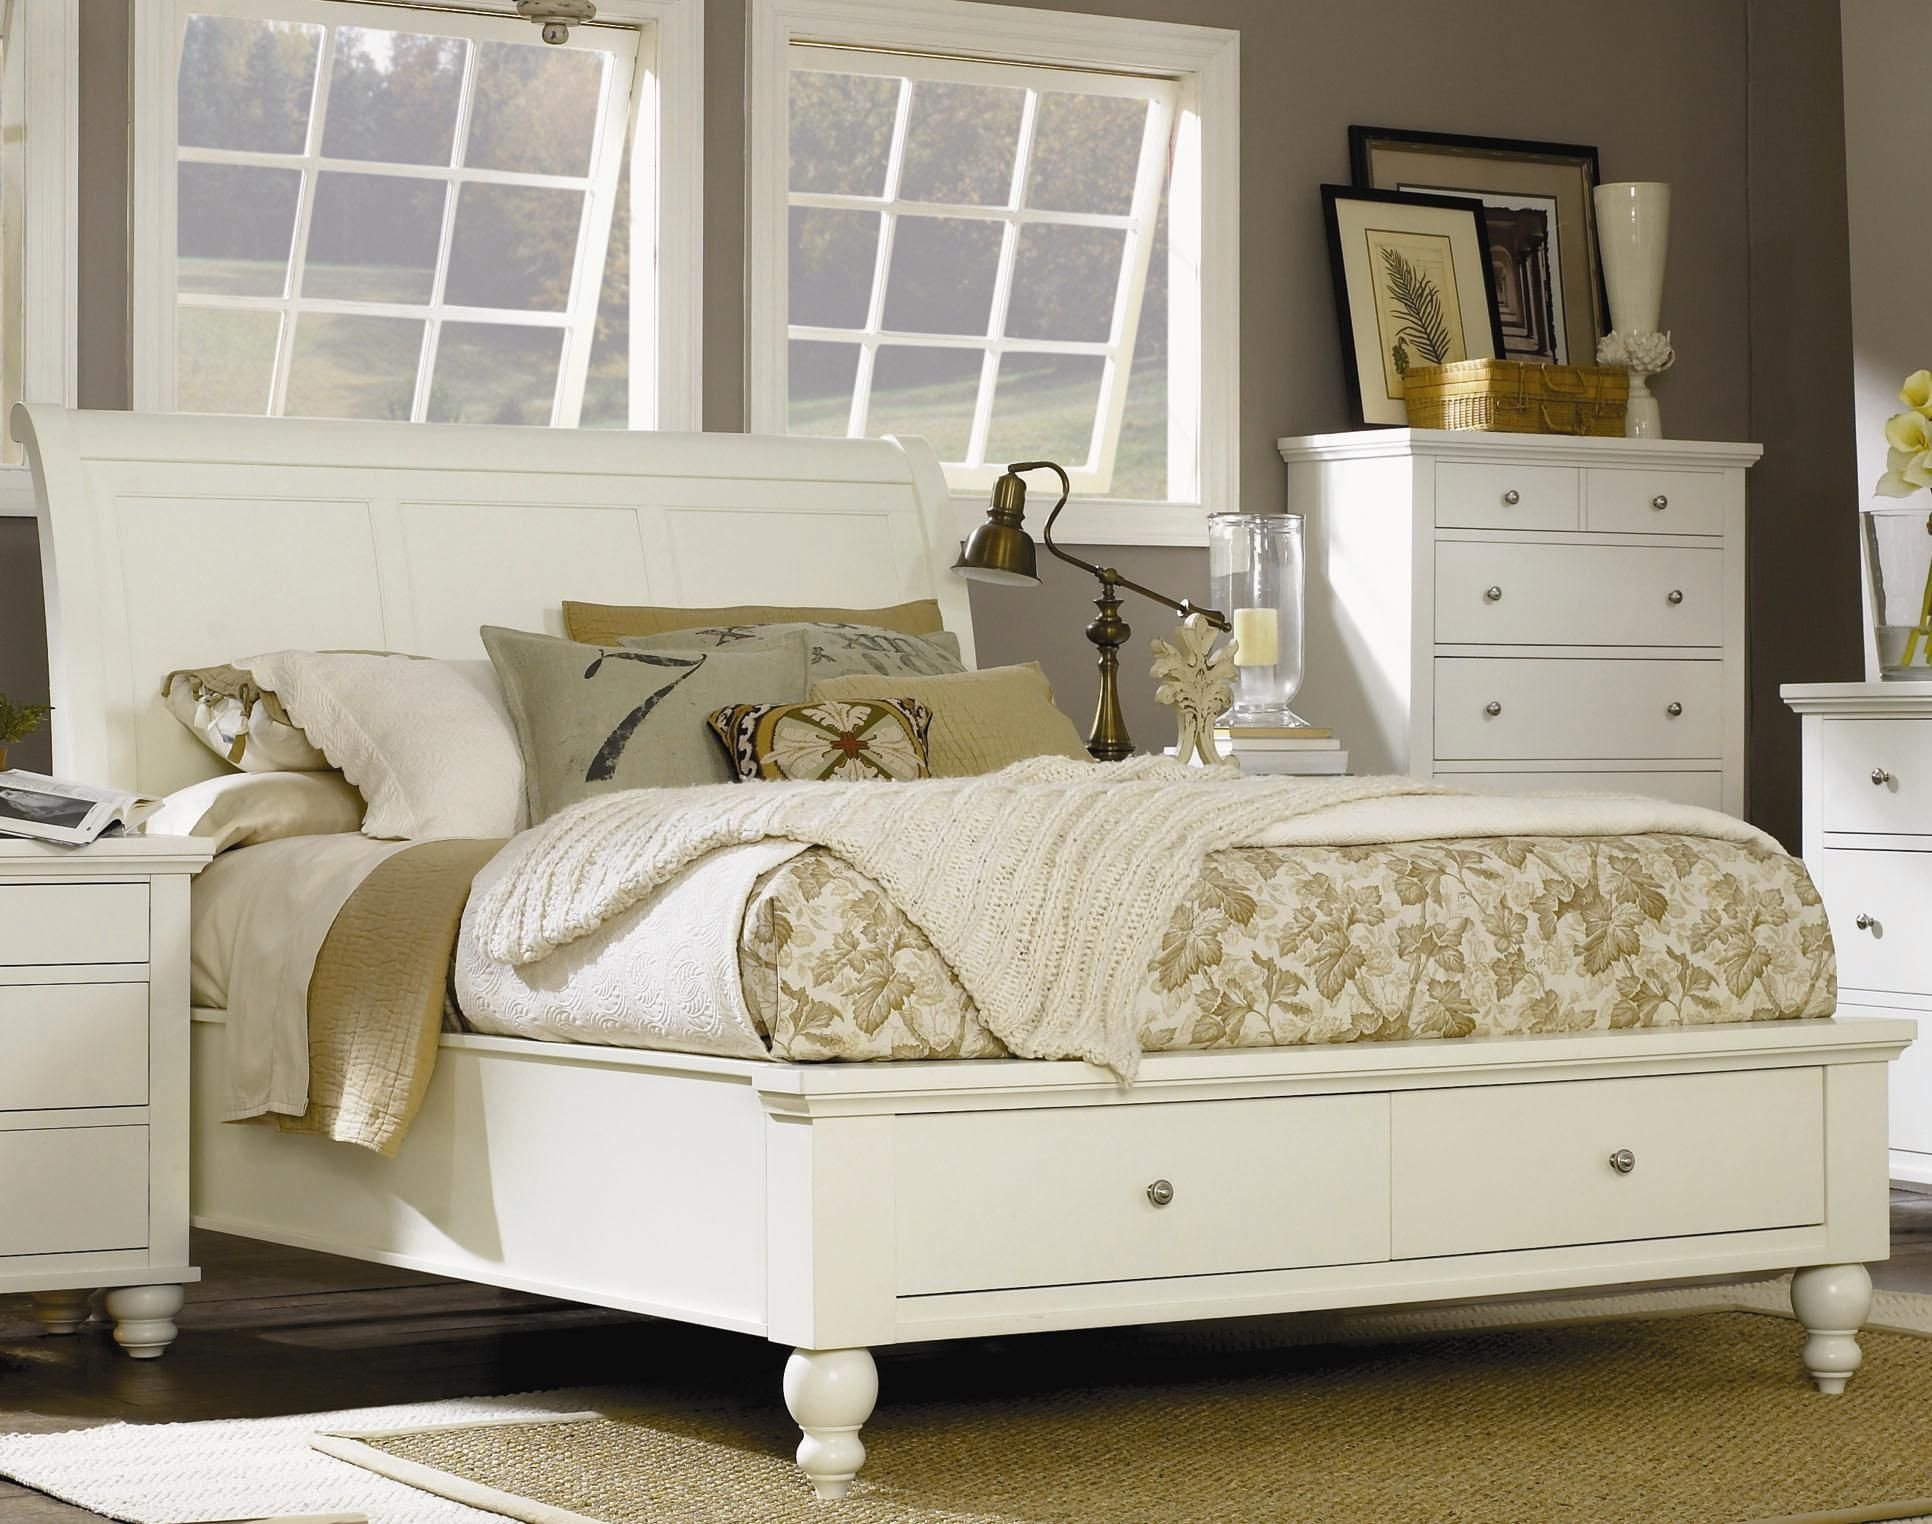 Cheap Twin Bedroom Set Elegant Cambridge King Size Bed with Sleigh Headboard & Drawer